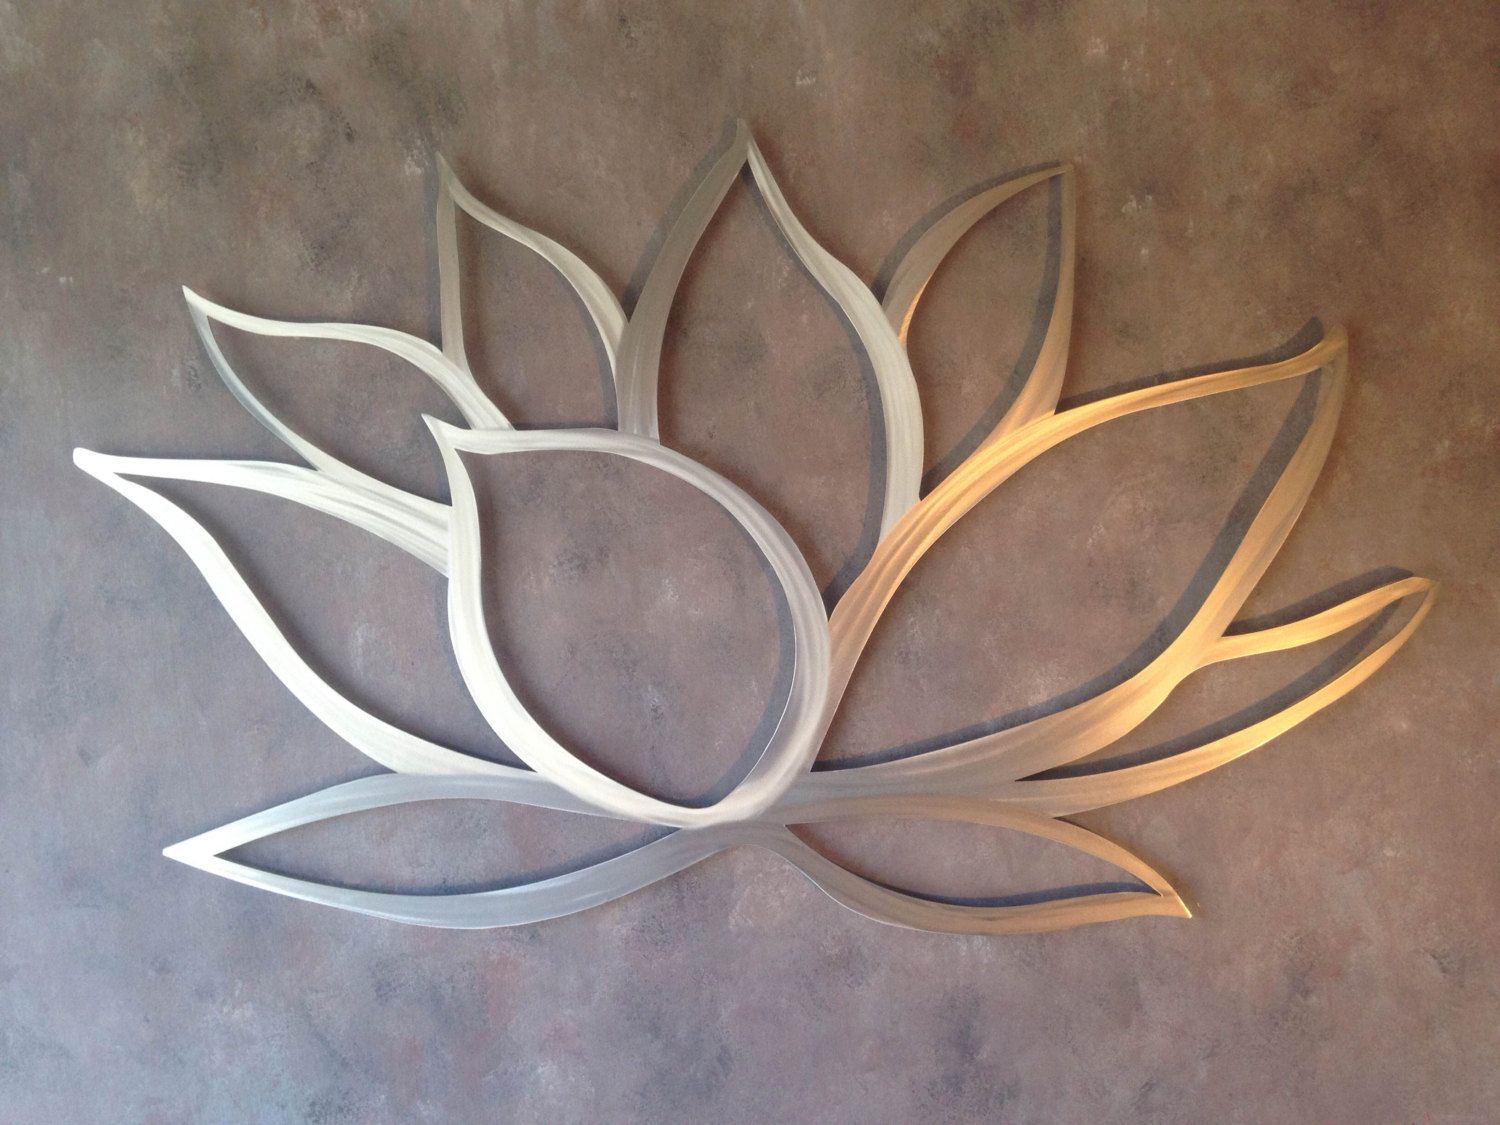 Lotus flower metal wall art lotus metal art por inspiremetals lotus flower metal wall art lotus metal art por inspiremetals amipublicfo Gallery